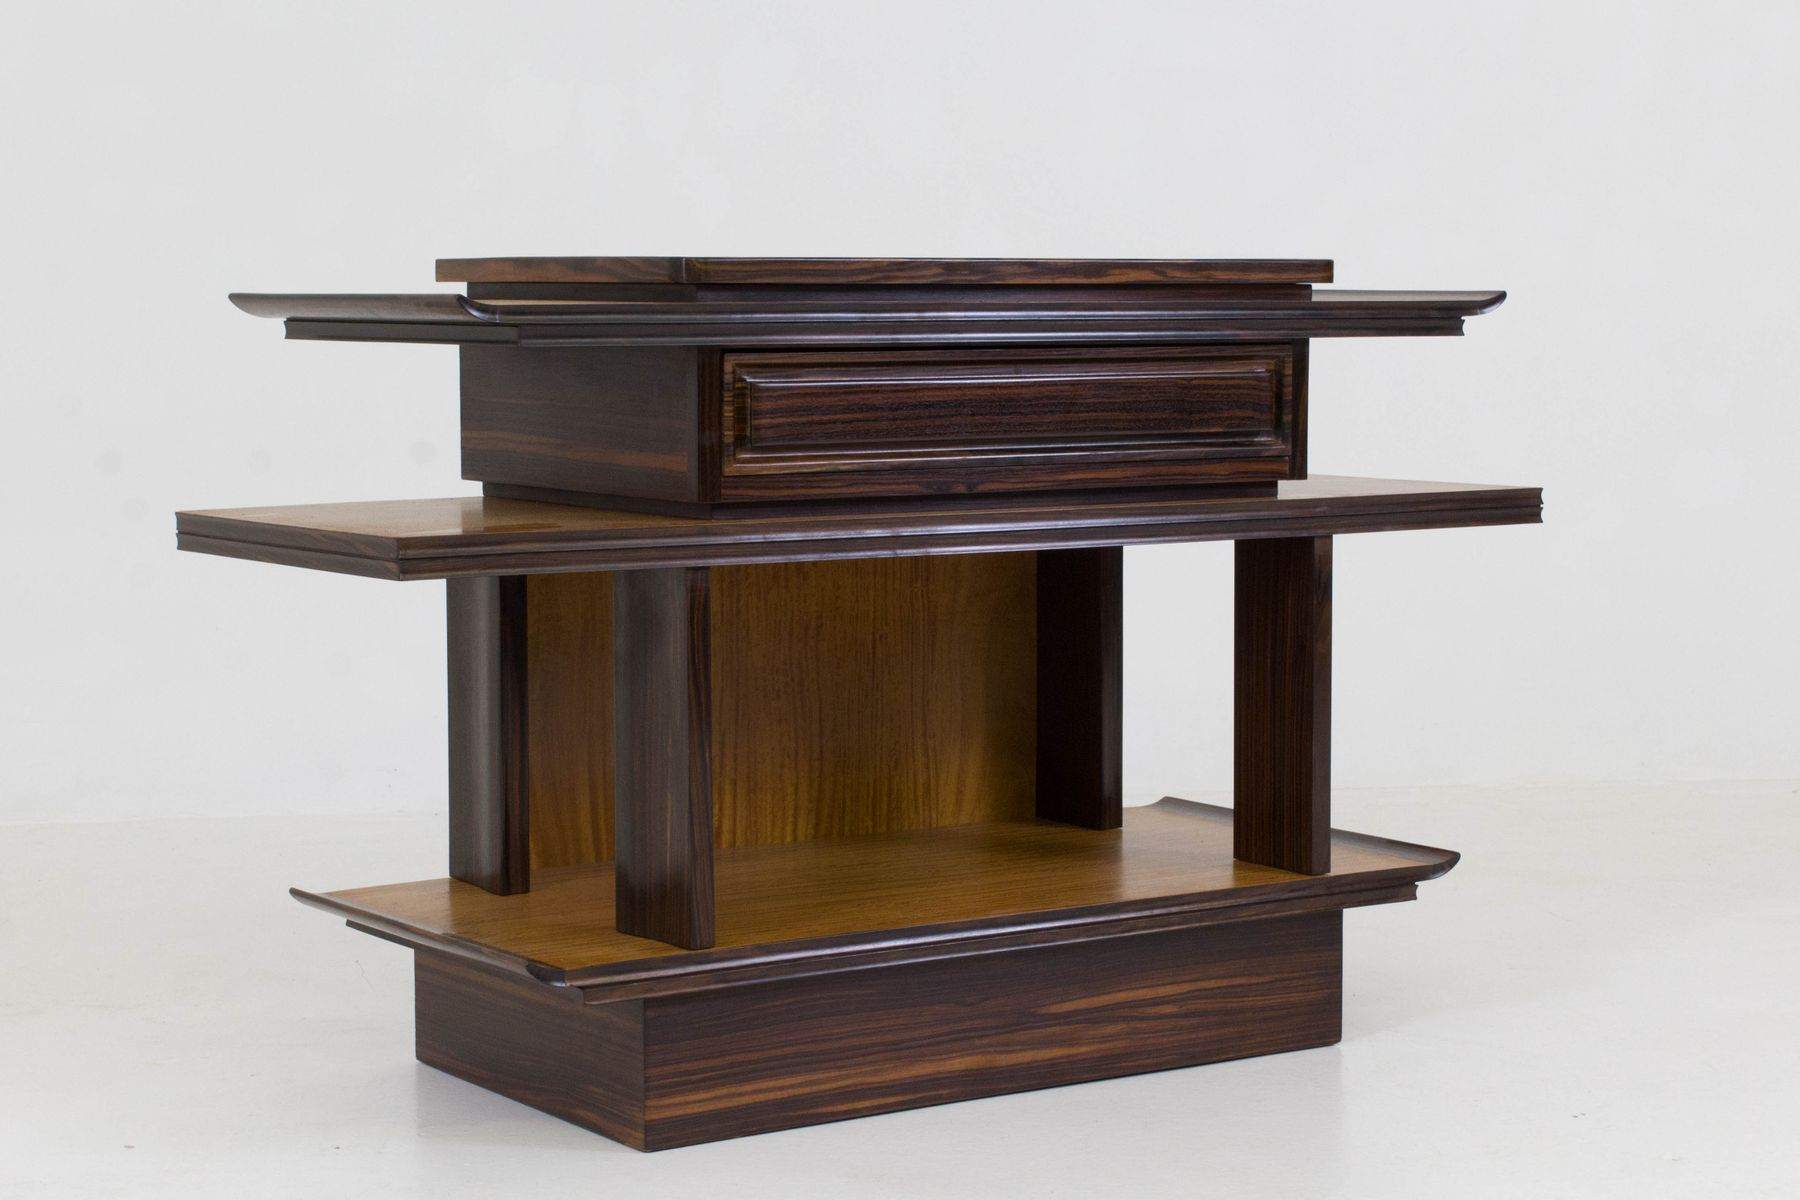 Art deco console table by a h zinsmeister for gebr reens 1930s price per piece geotapseo Image collections